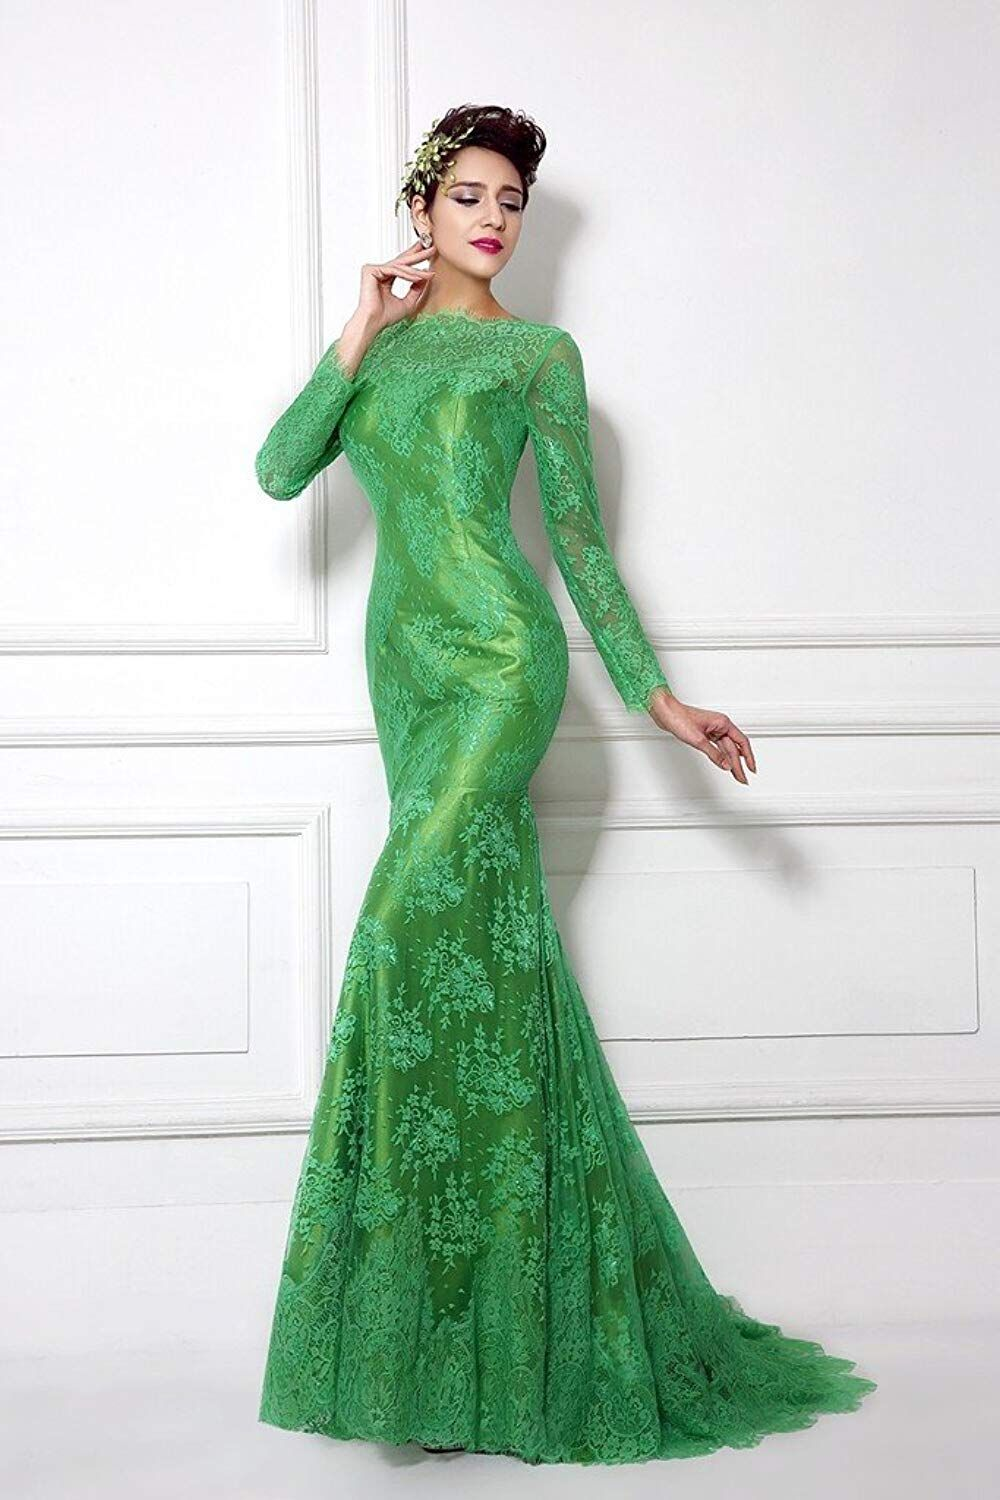 e8fc9eceacb6 Lemai Women's Green Long Sleeves Sheer Lace Mermaid Mother of the Bride  Dresses >>> To view further for this item, visit the image link.